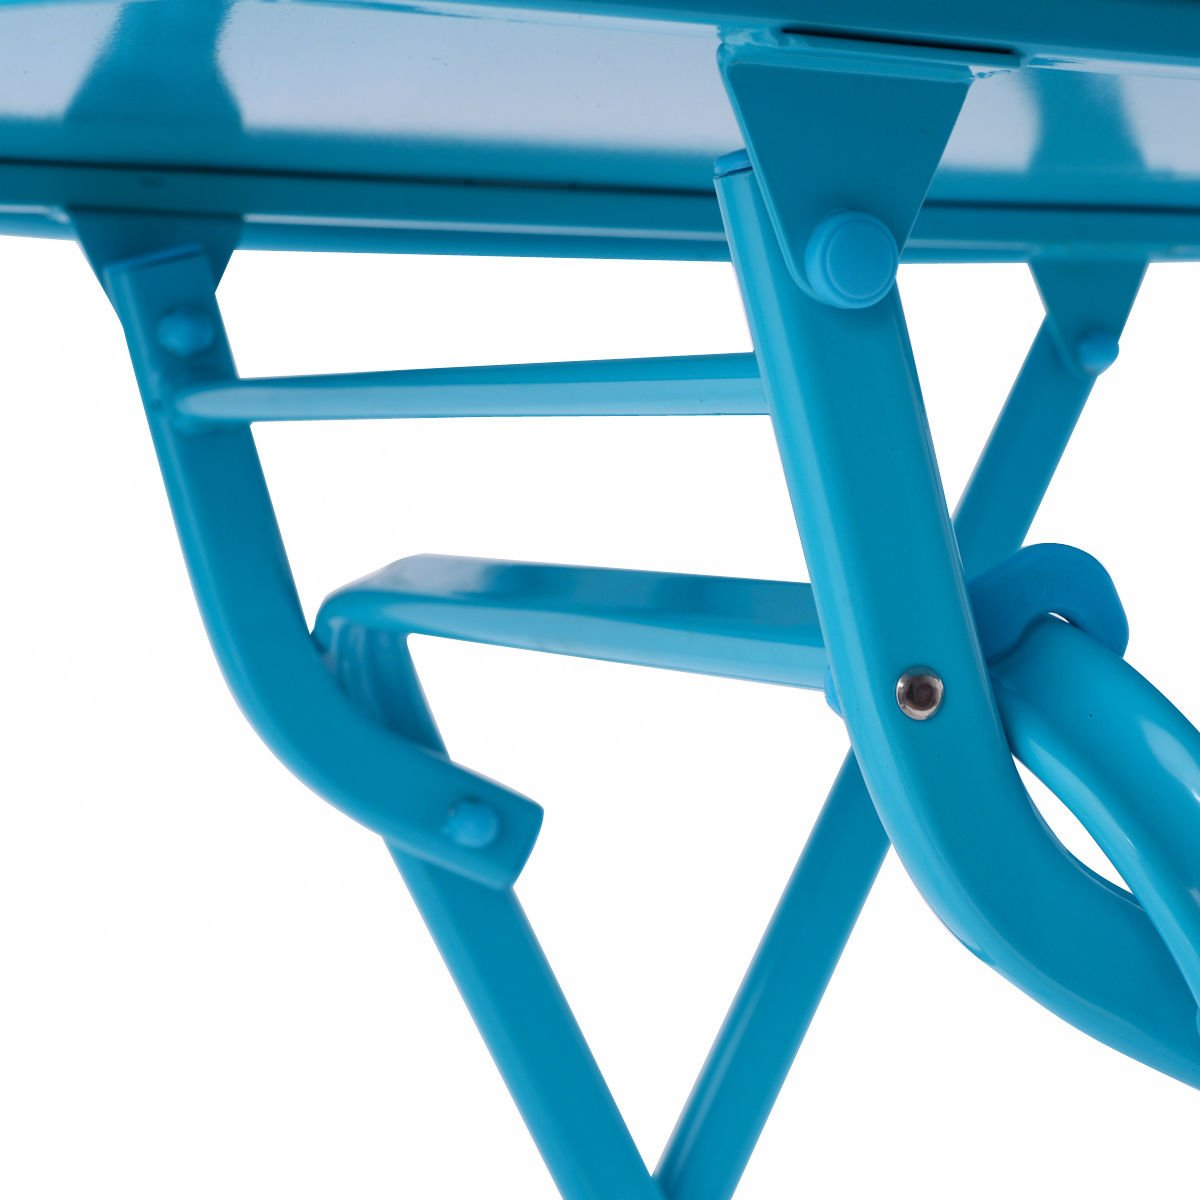 3 Pcs. Blue Table Chair Set Foldable Outdoor Patio Garden Pool Metal Furniture by Allblessings (Image #8)